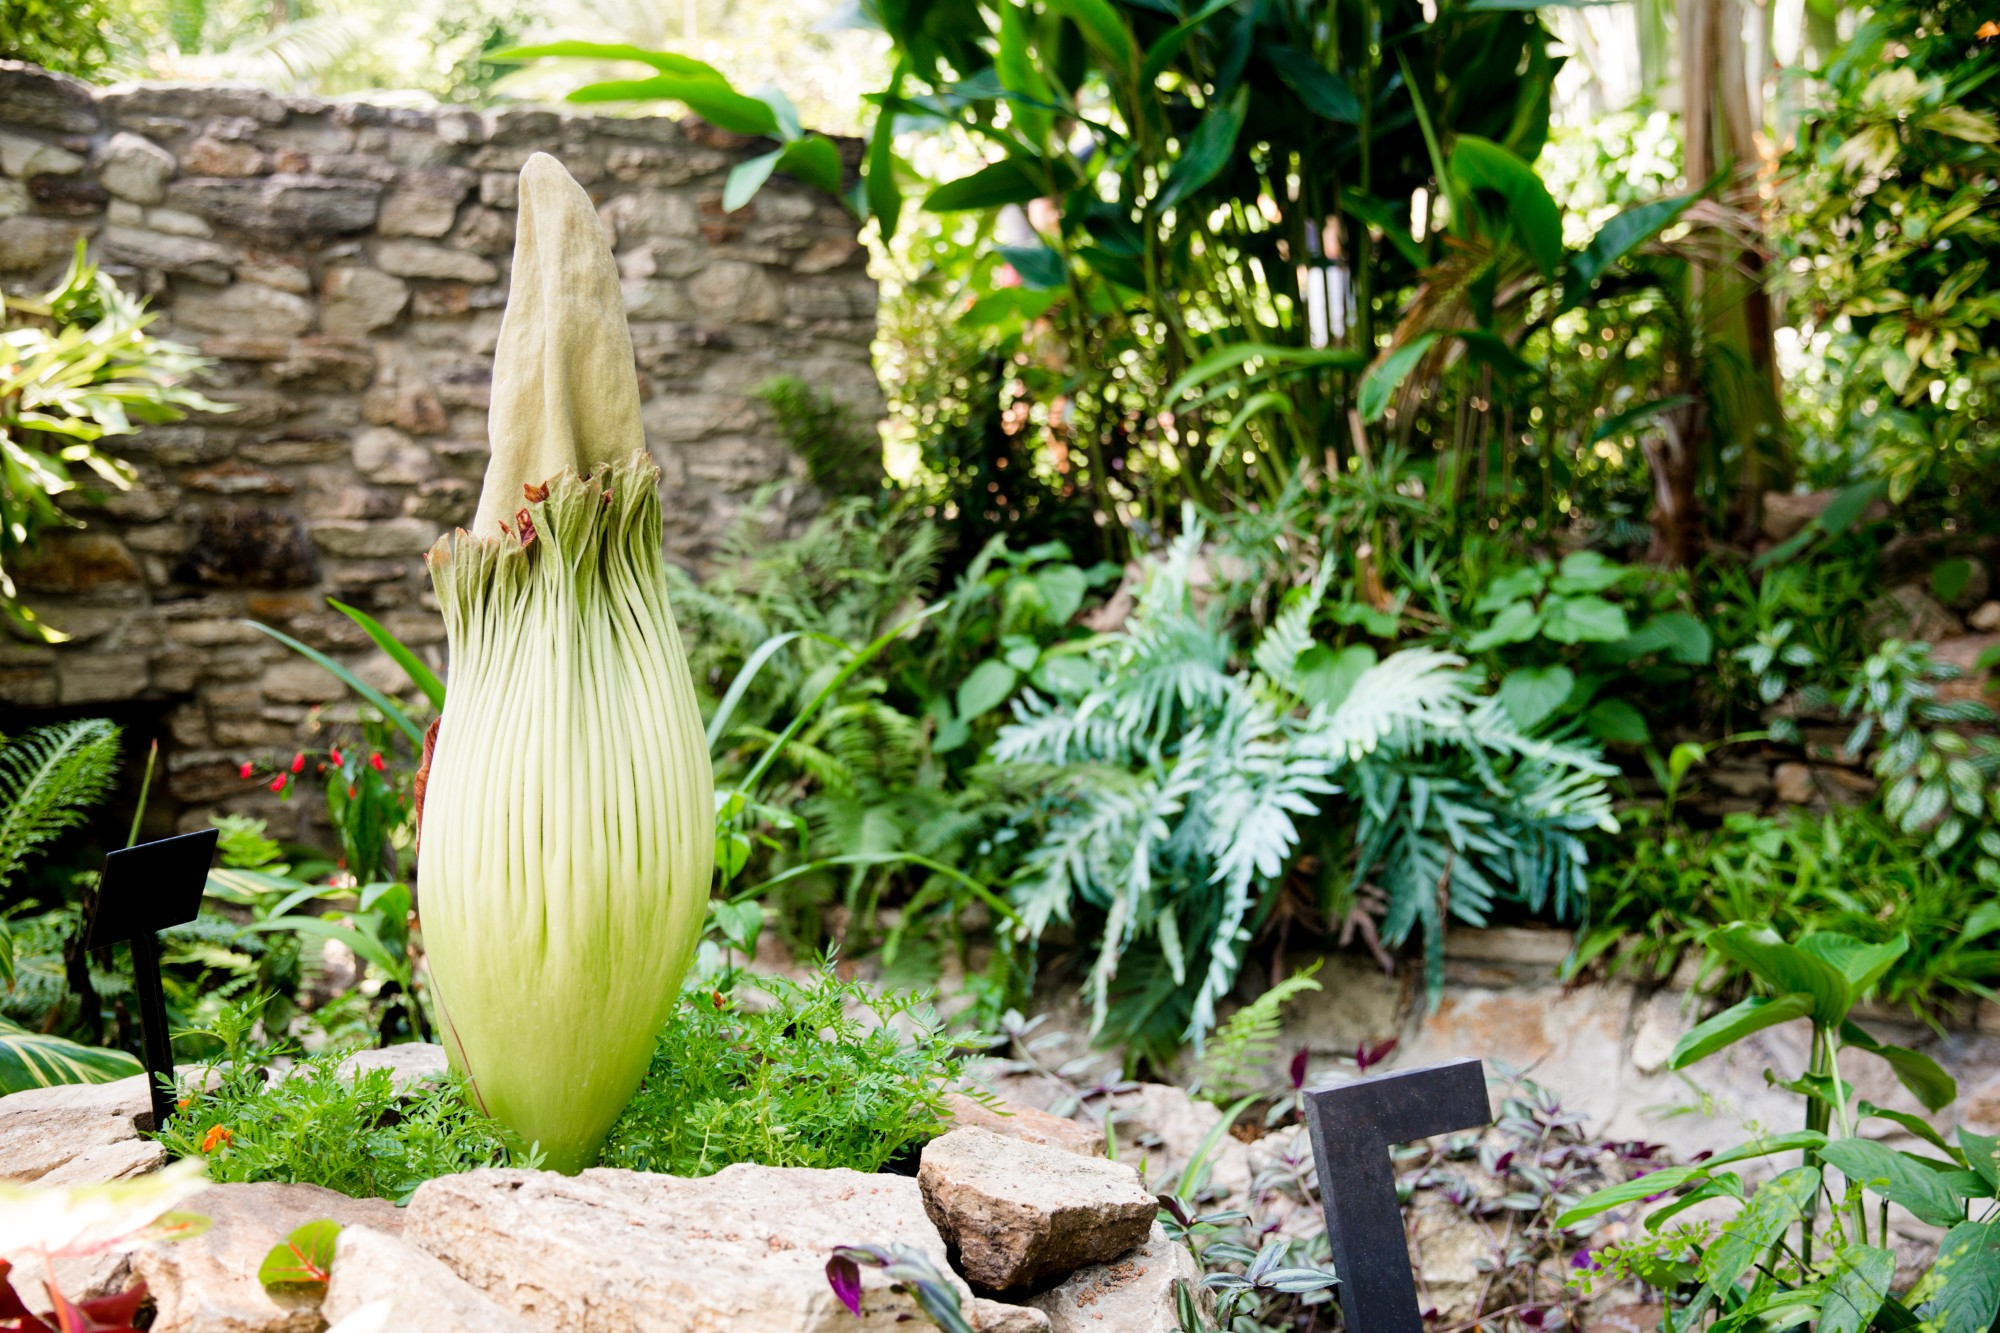 Amorphophallus titanum (Carrie the Corpse Flower). Photo by Ivory House Photography.